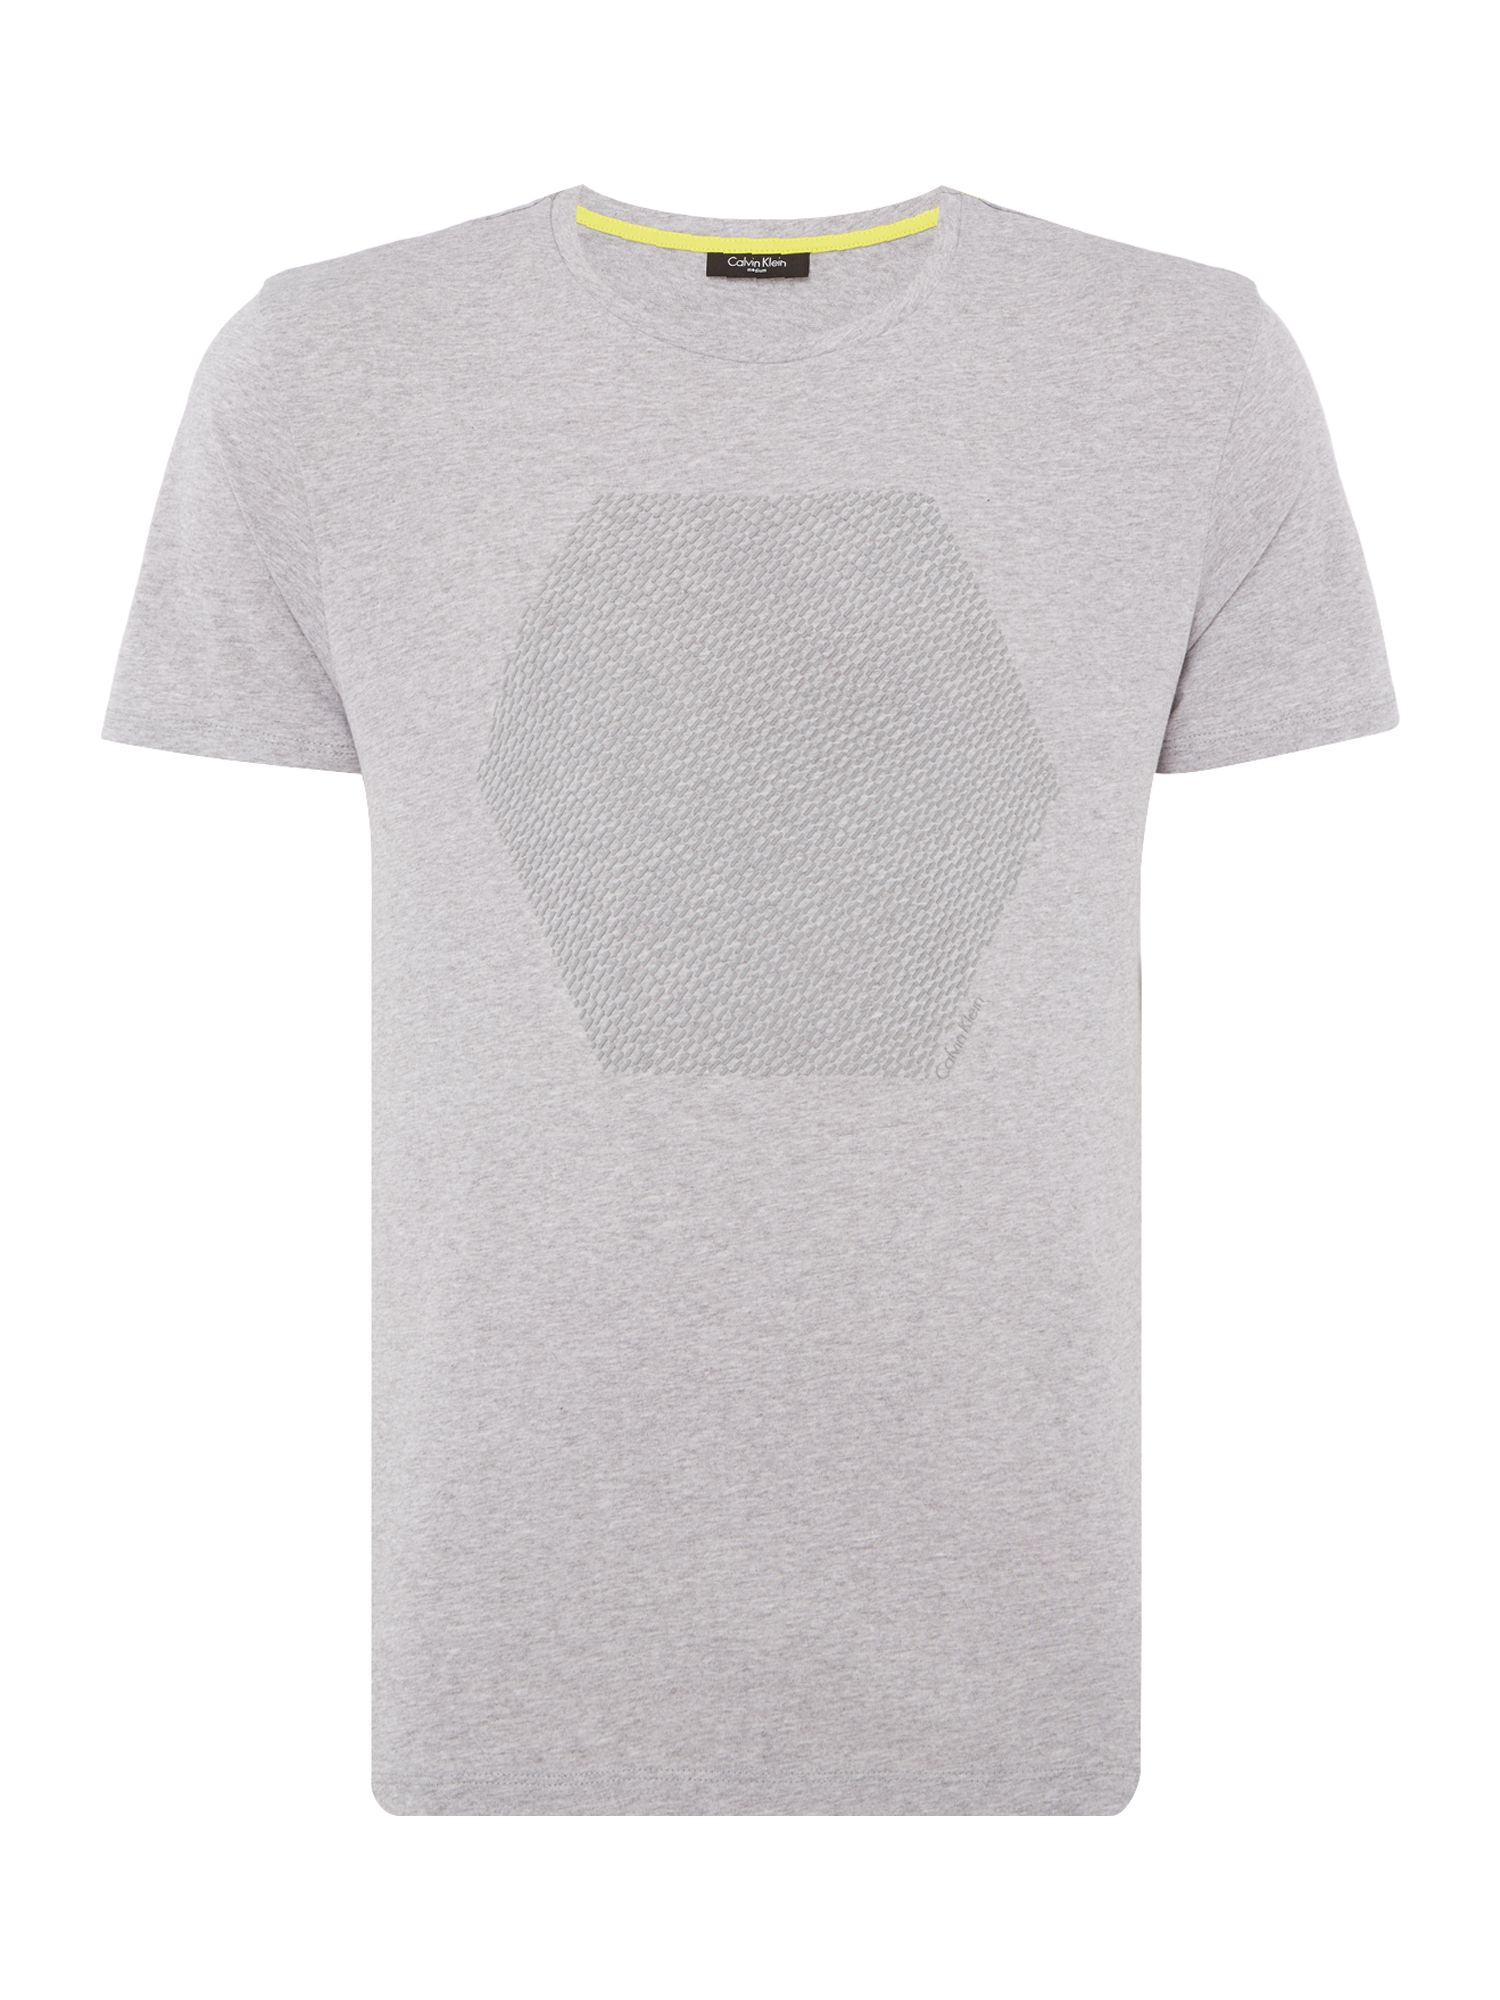 Men's Calvin Klein Jali Refined Cotton T-shirt, Mid Grey